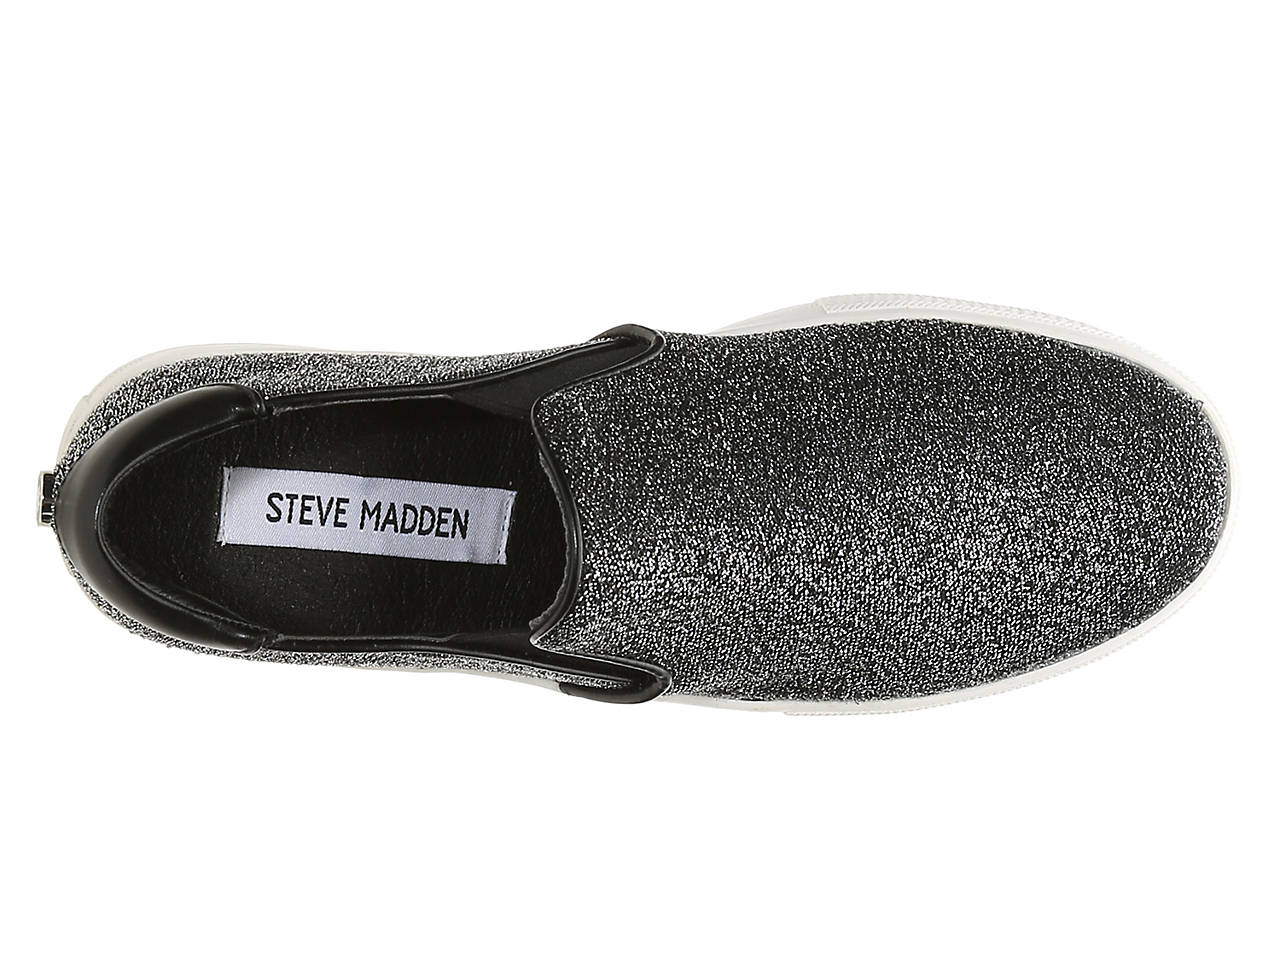 a8aa9122584 Steve Madden Noe Lurex Slip-On Sneaker Women s Shoes